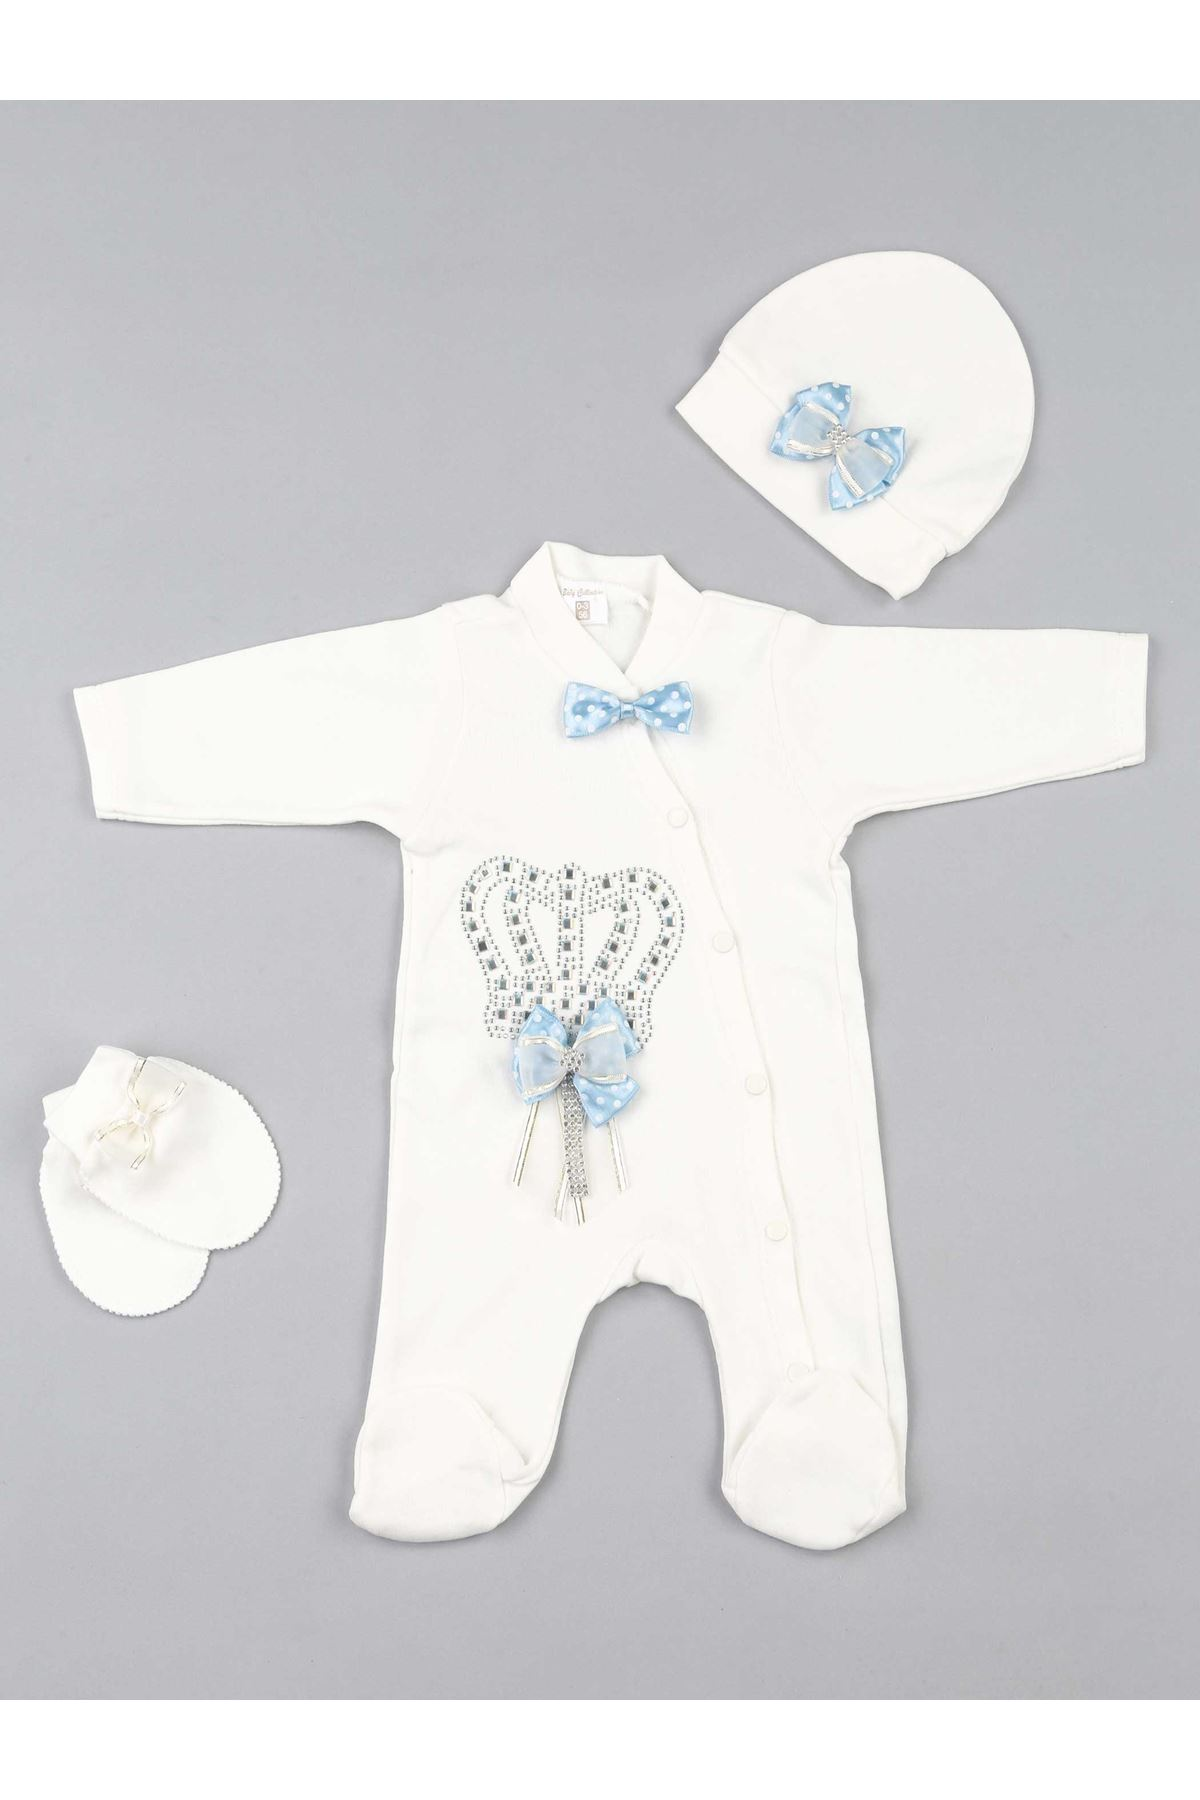 Blue Baby rompers Boys Newborn Clothes 3 pieces set cotton soft antiallergic fabric of kinds clothing models for babies